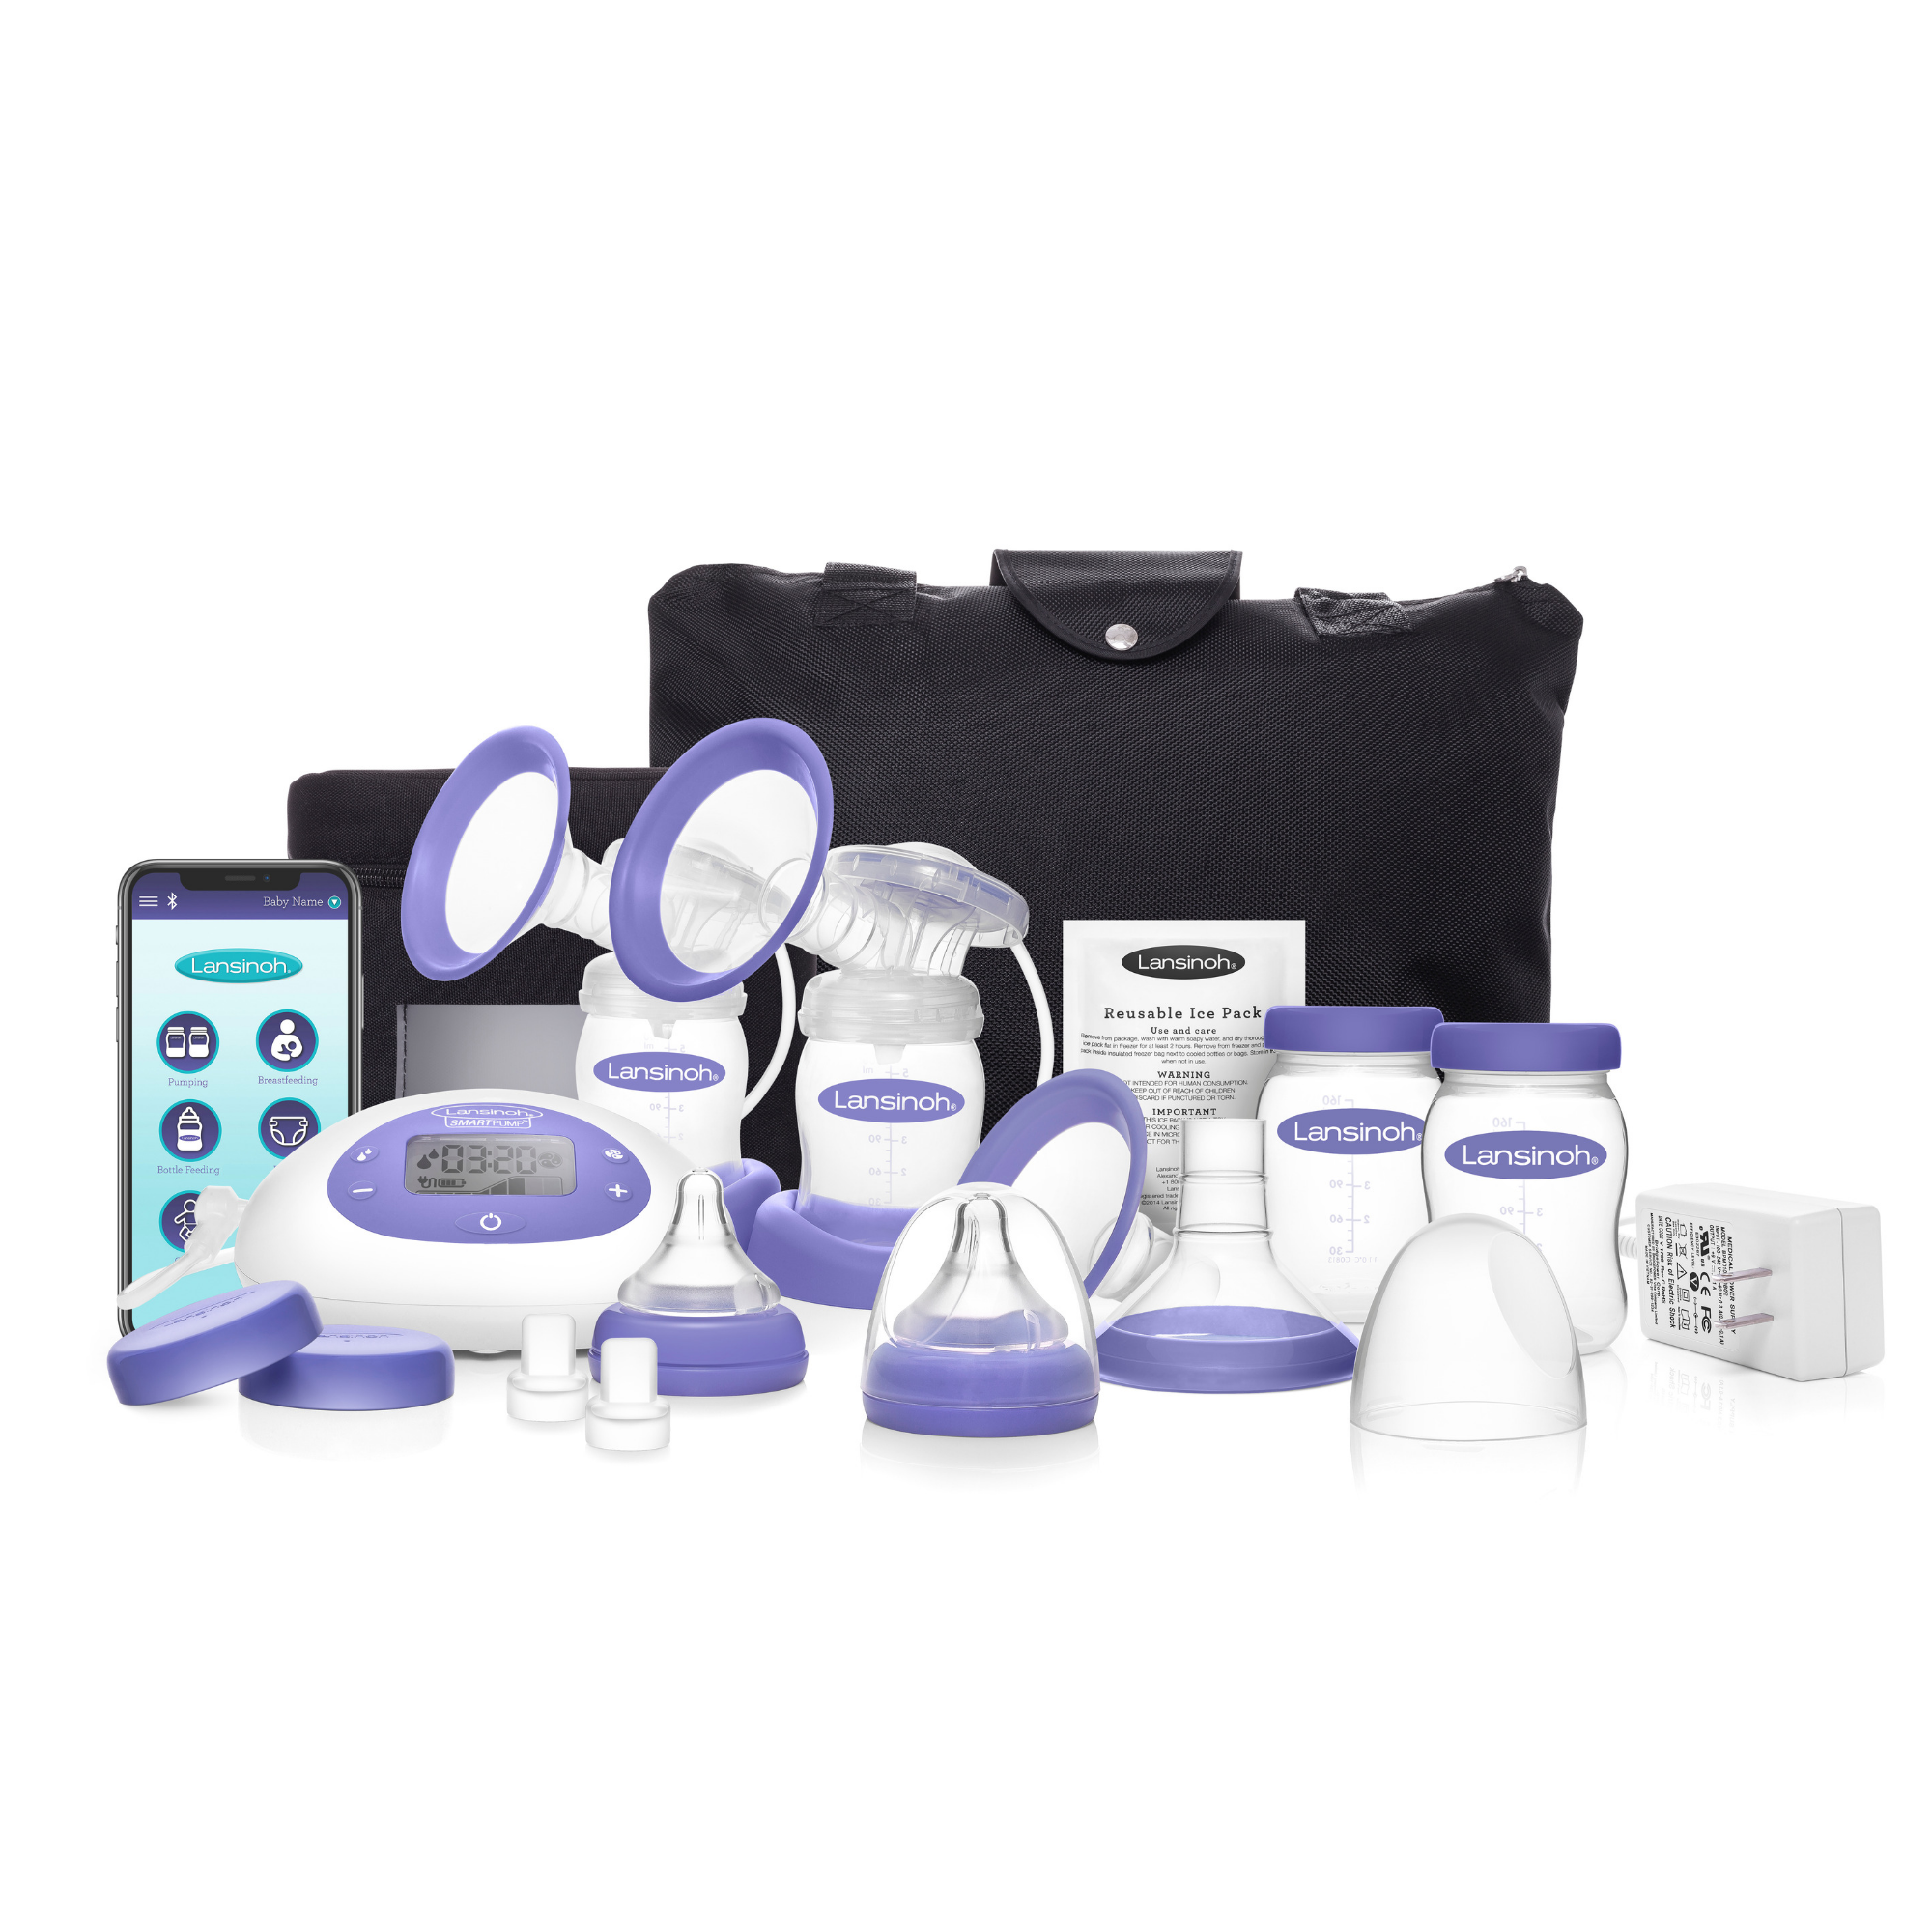 Lansinoh Smartpump Double Electric Breast Pump From Walmart In